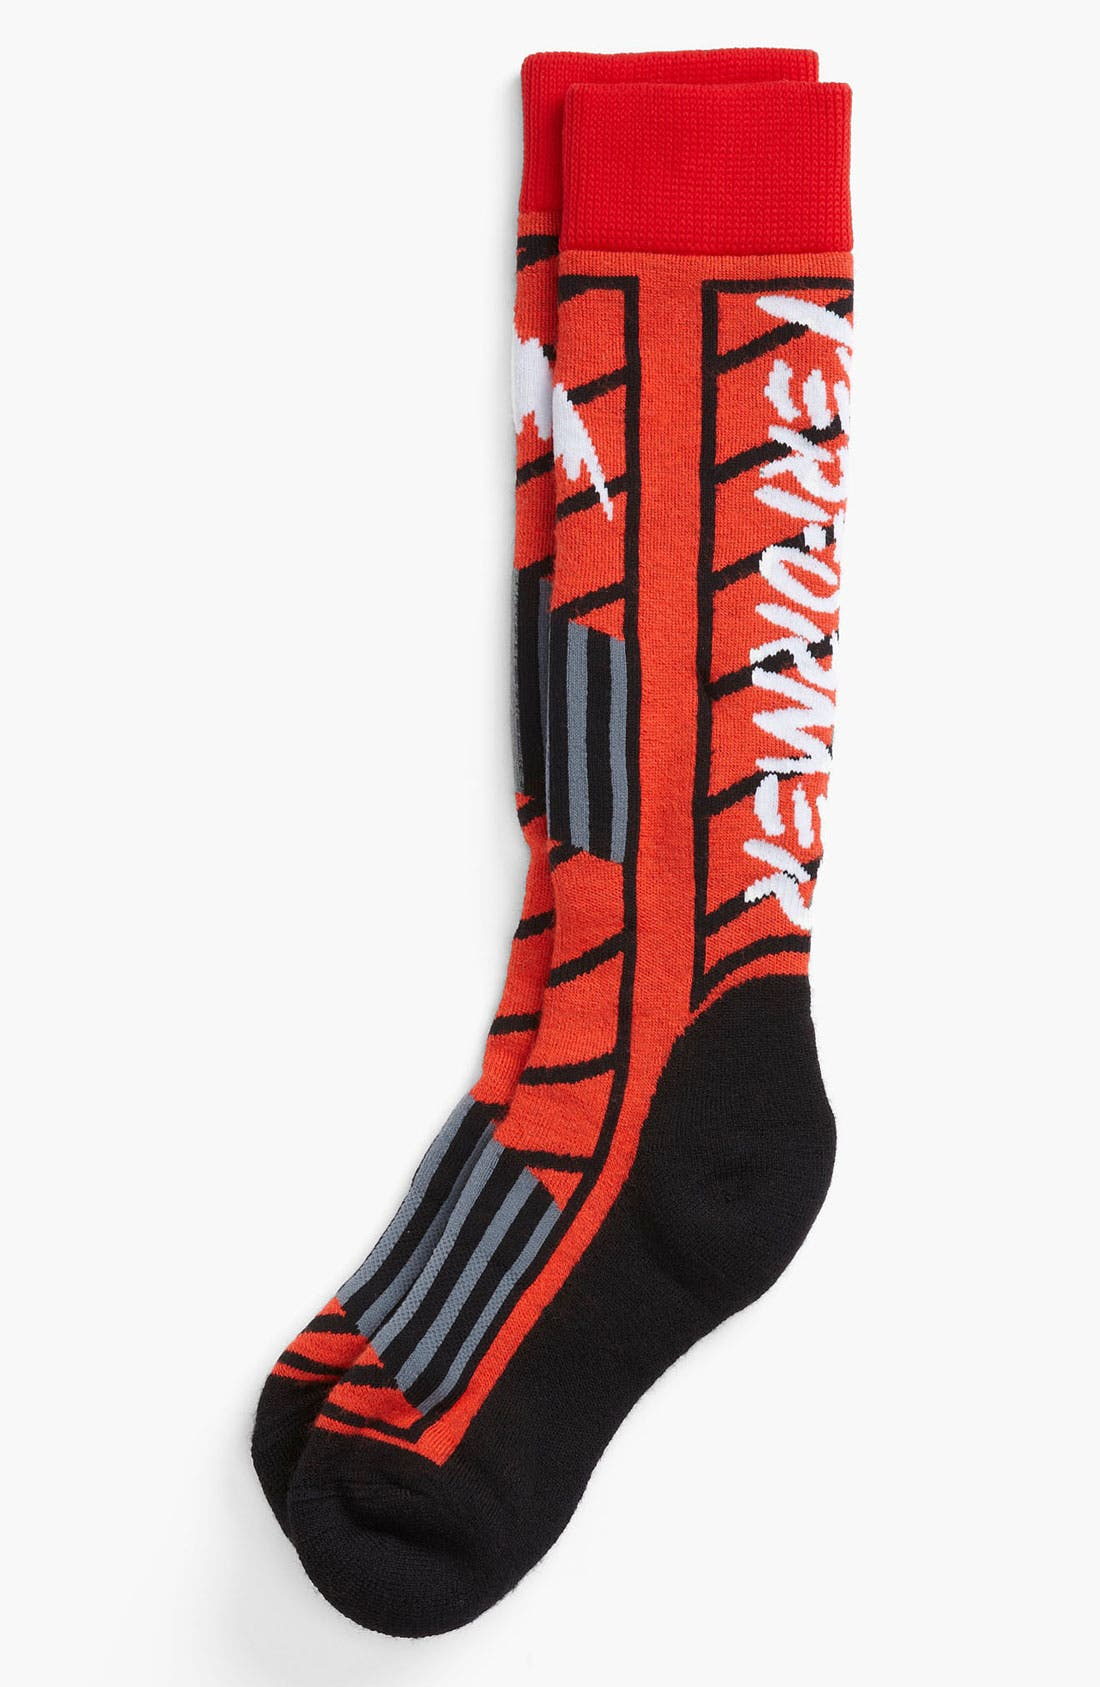 Alternate Image 1 Selected - Burton 'Party' Socks